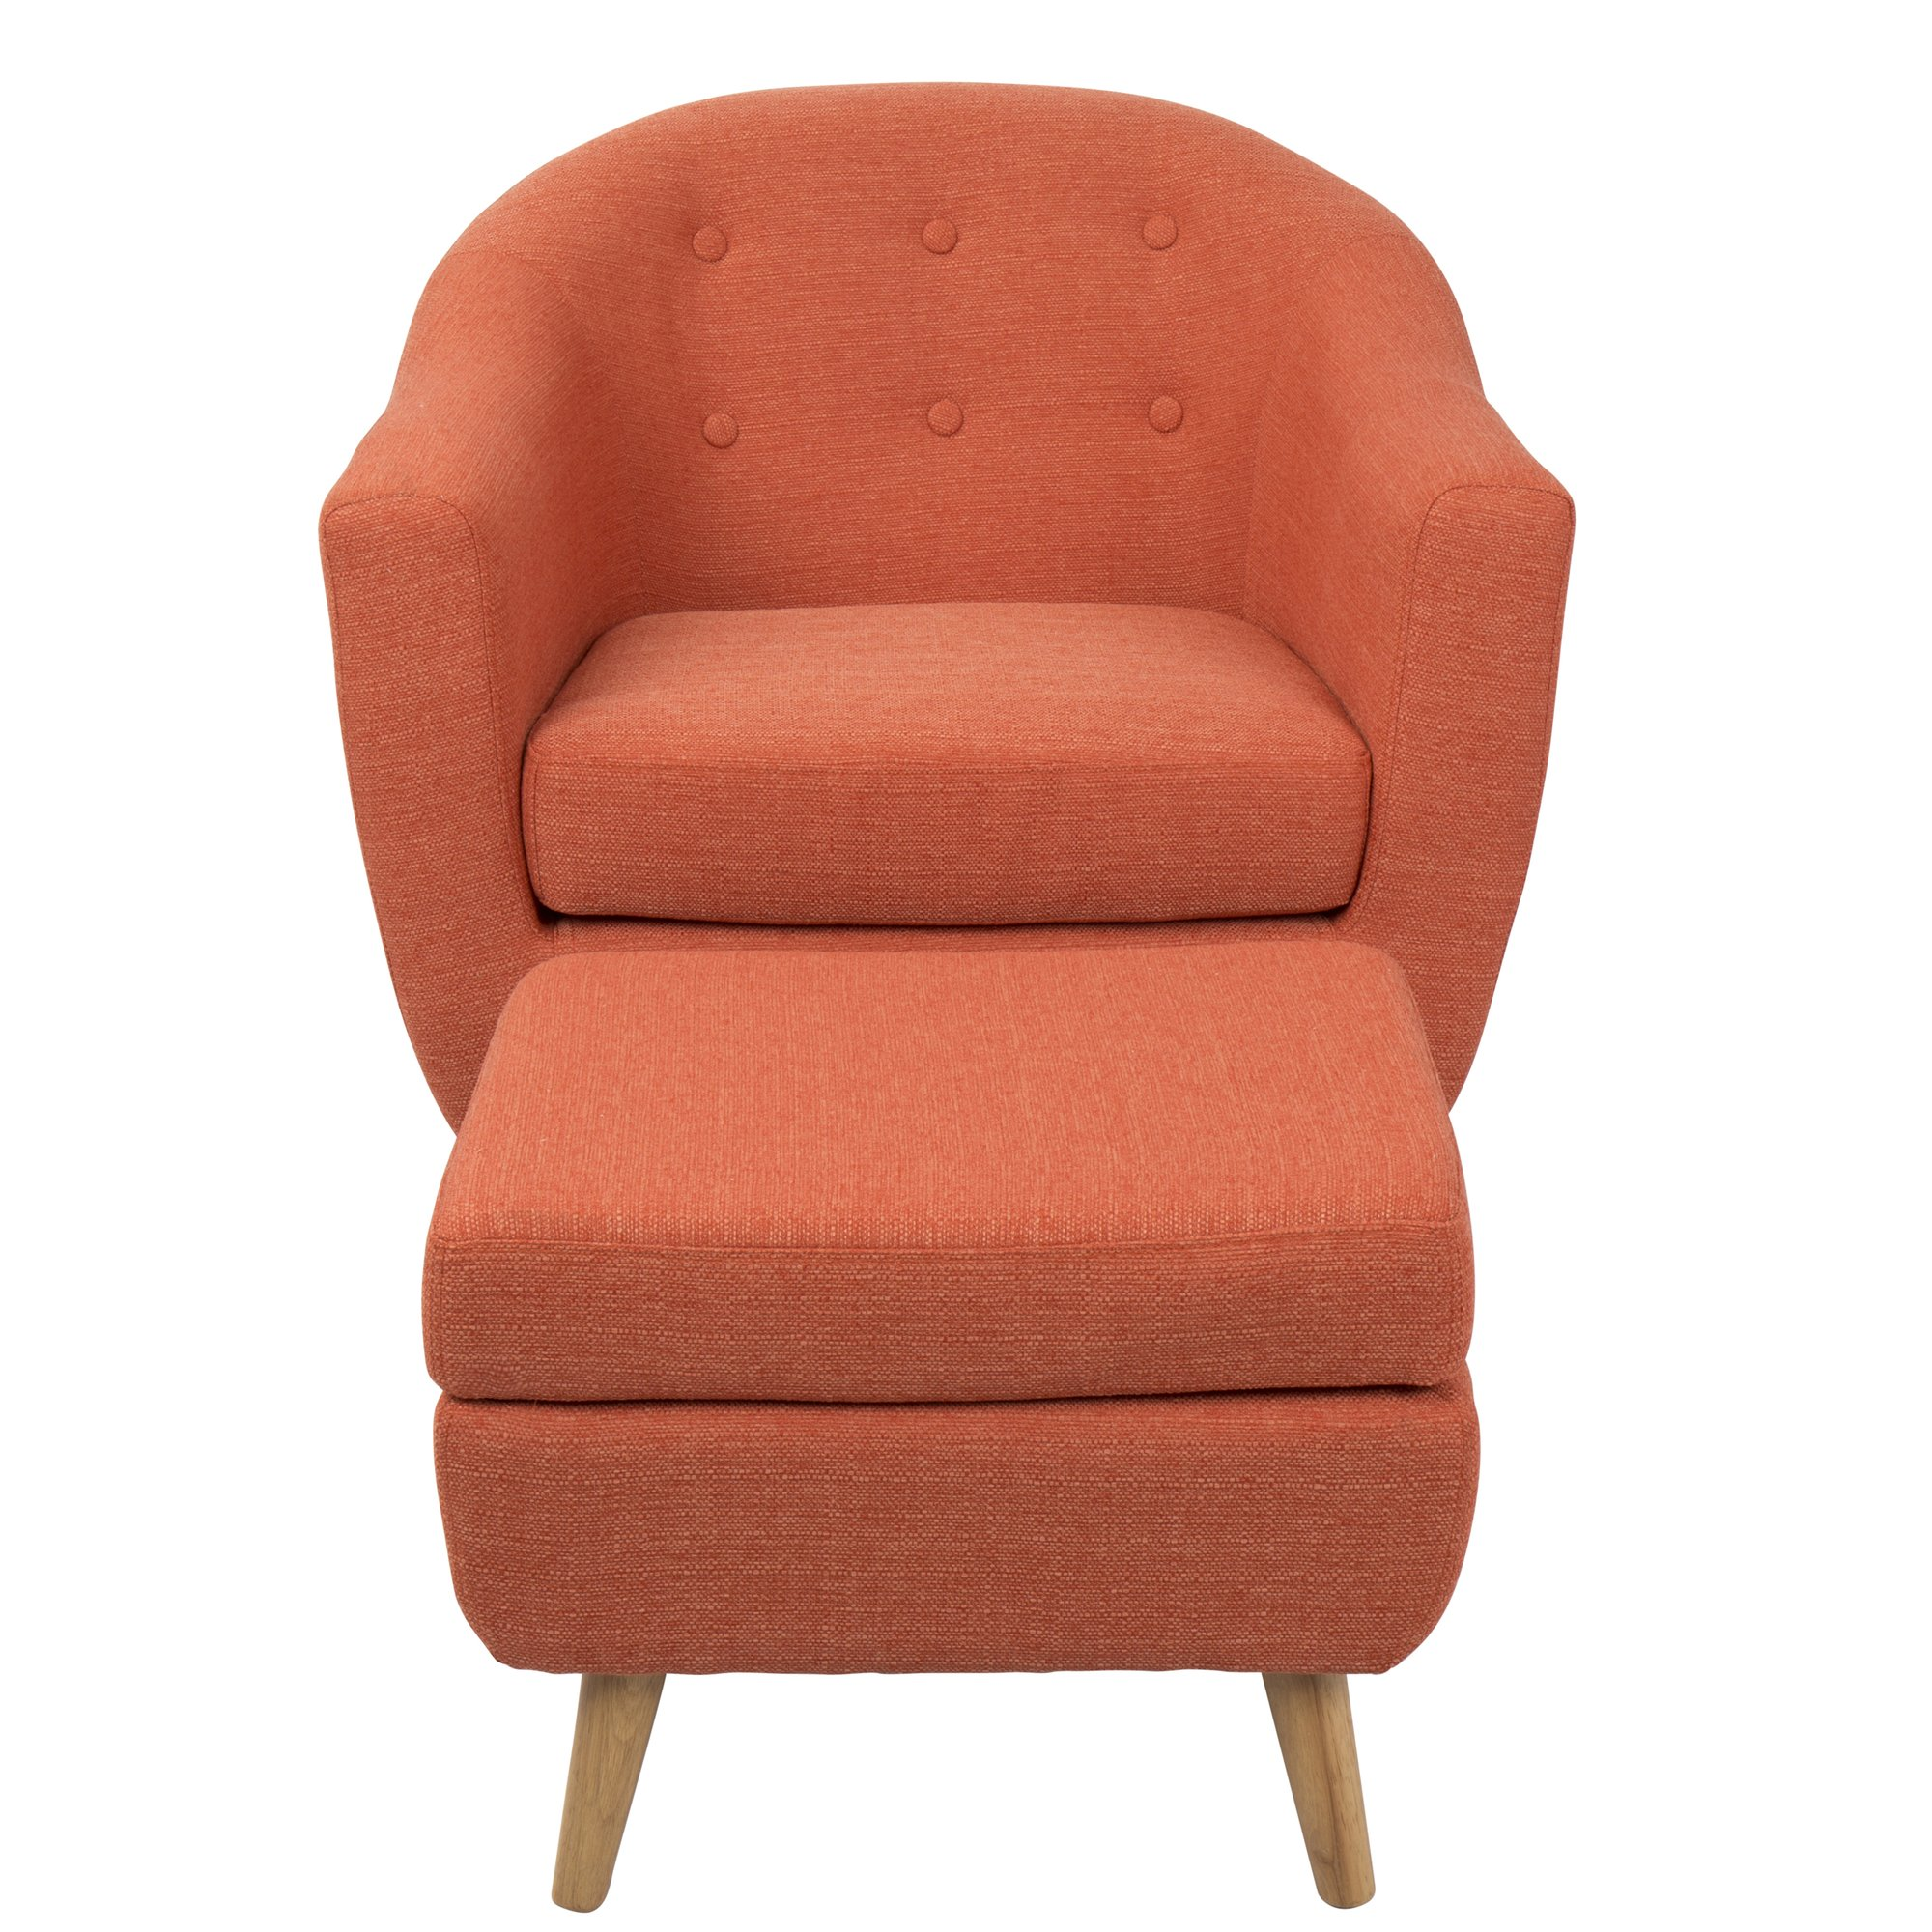 Barrell Chair Barrel Chair Buying Guide You Should Read Accent Chairs